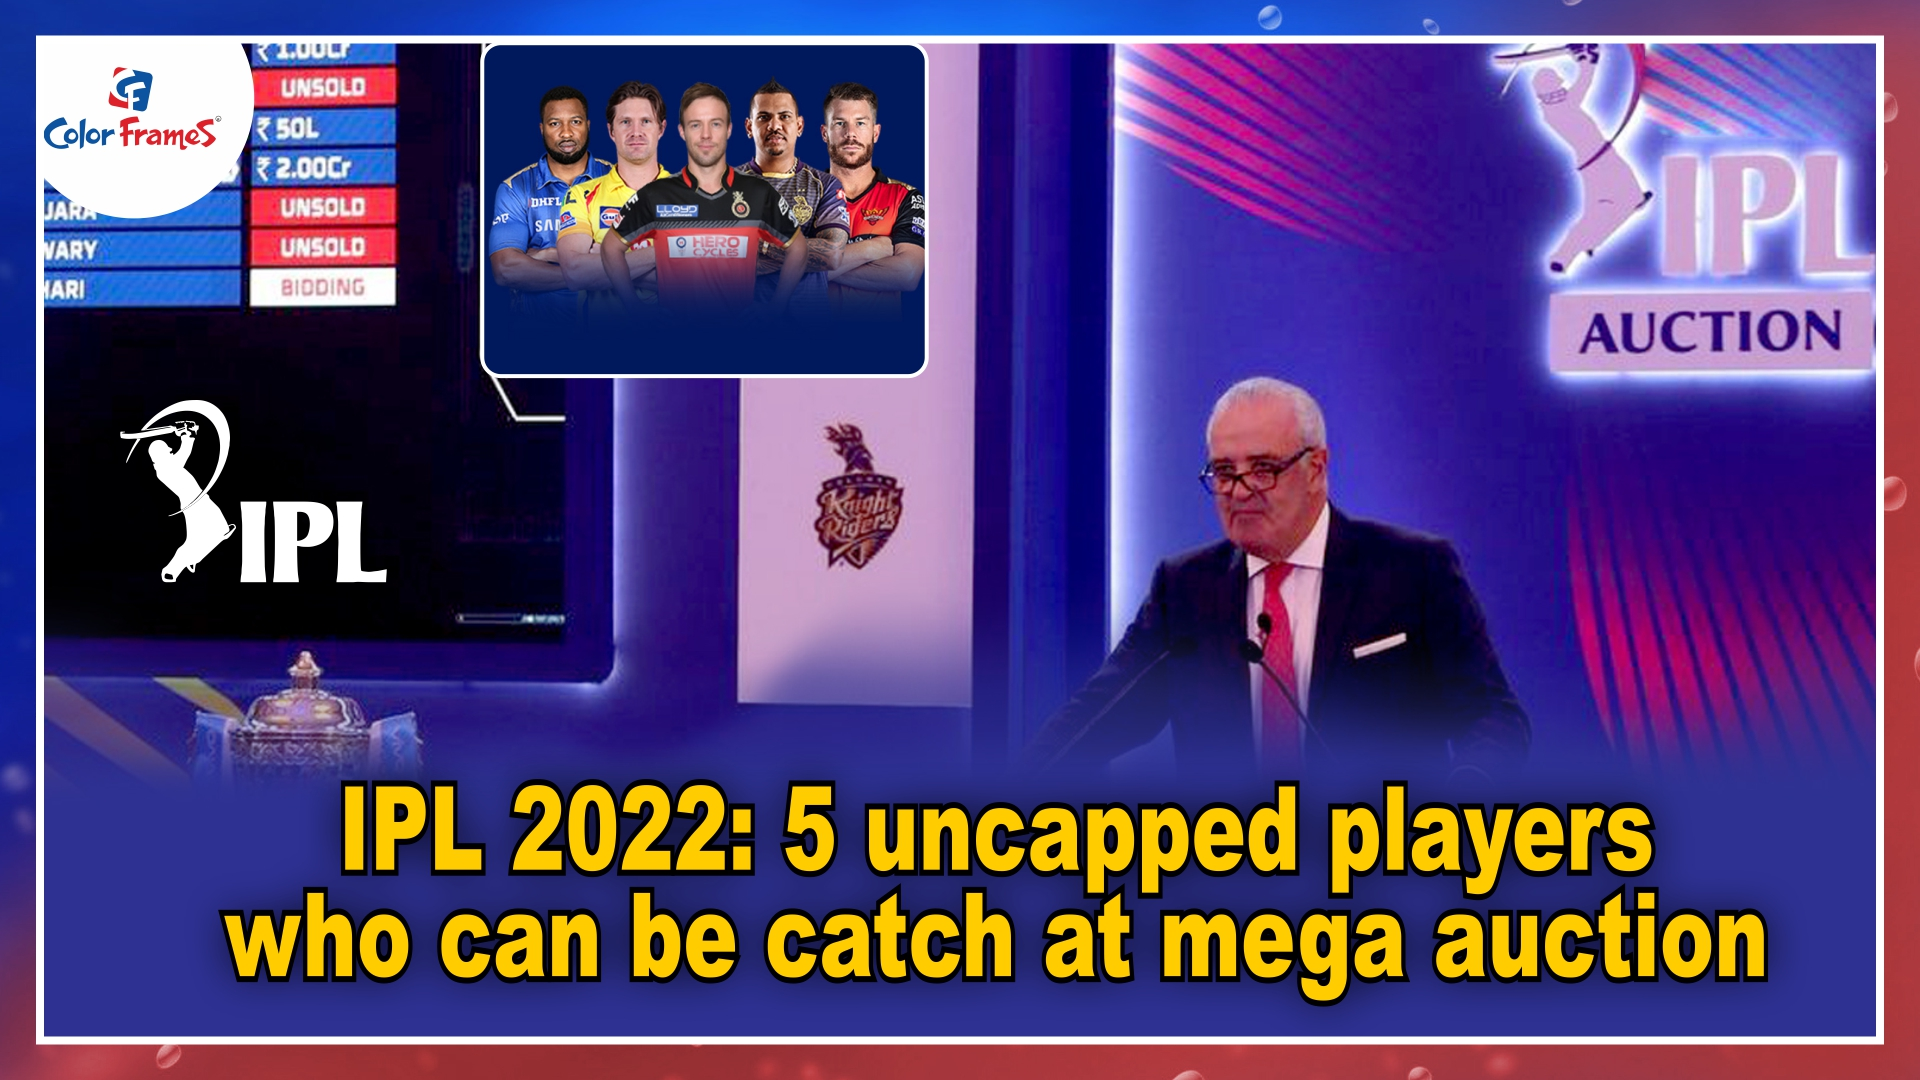 IPL 2022: 5 uncapped players who can be catch at mega auction